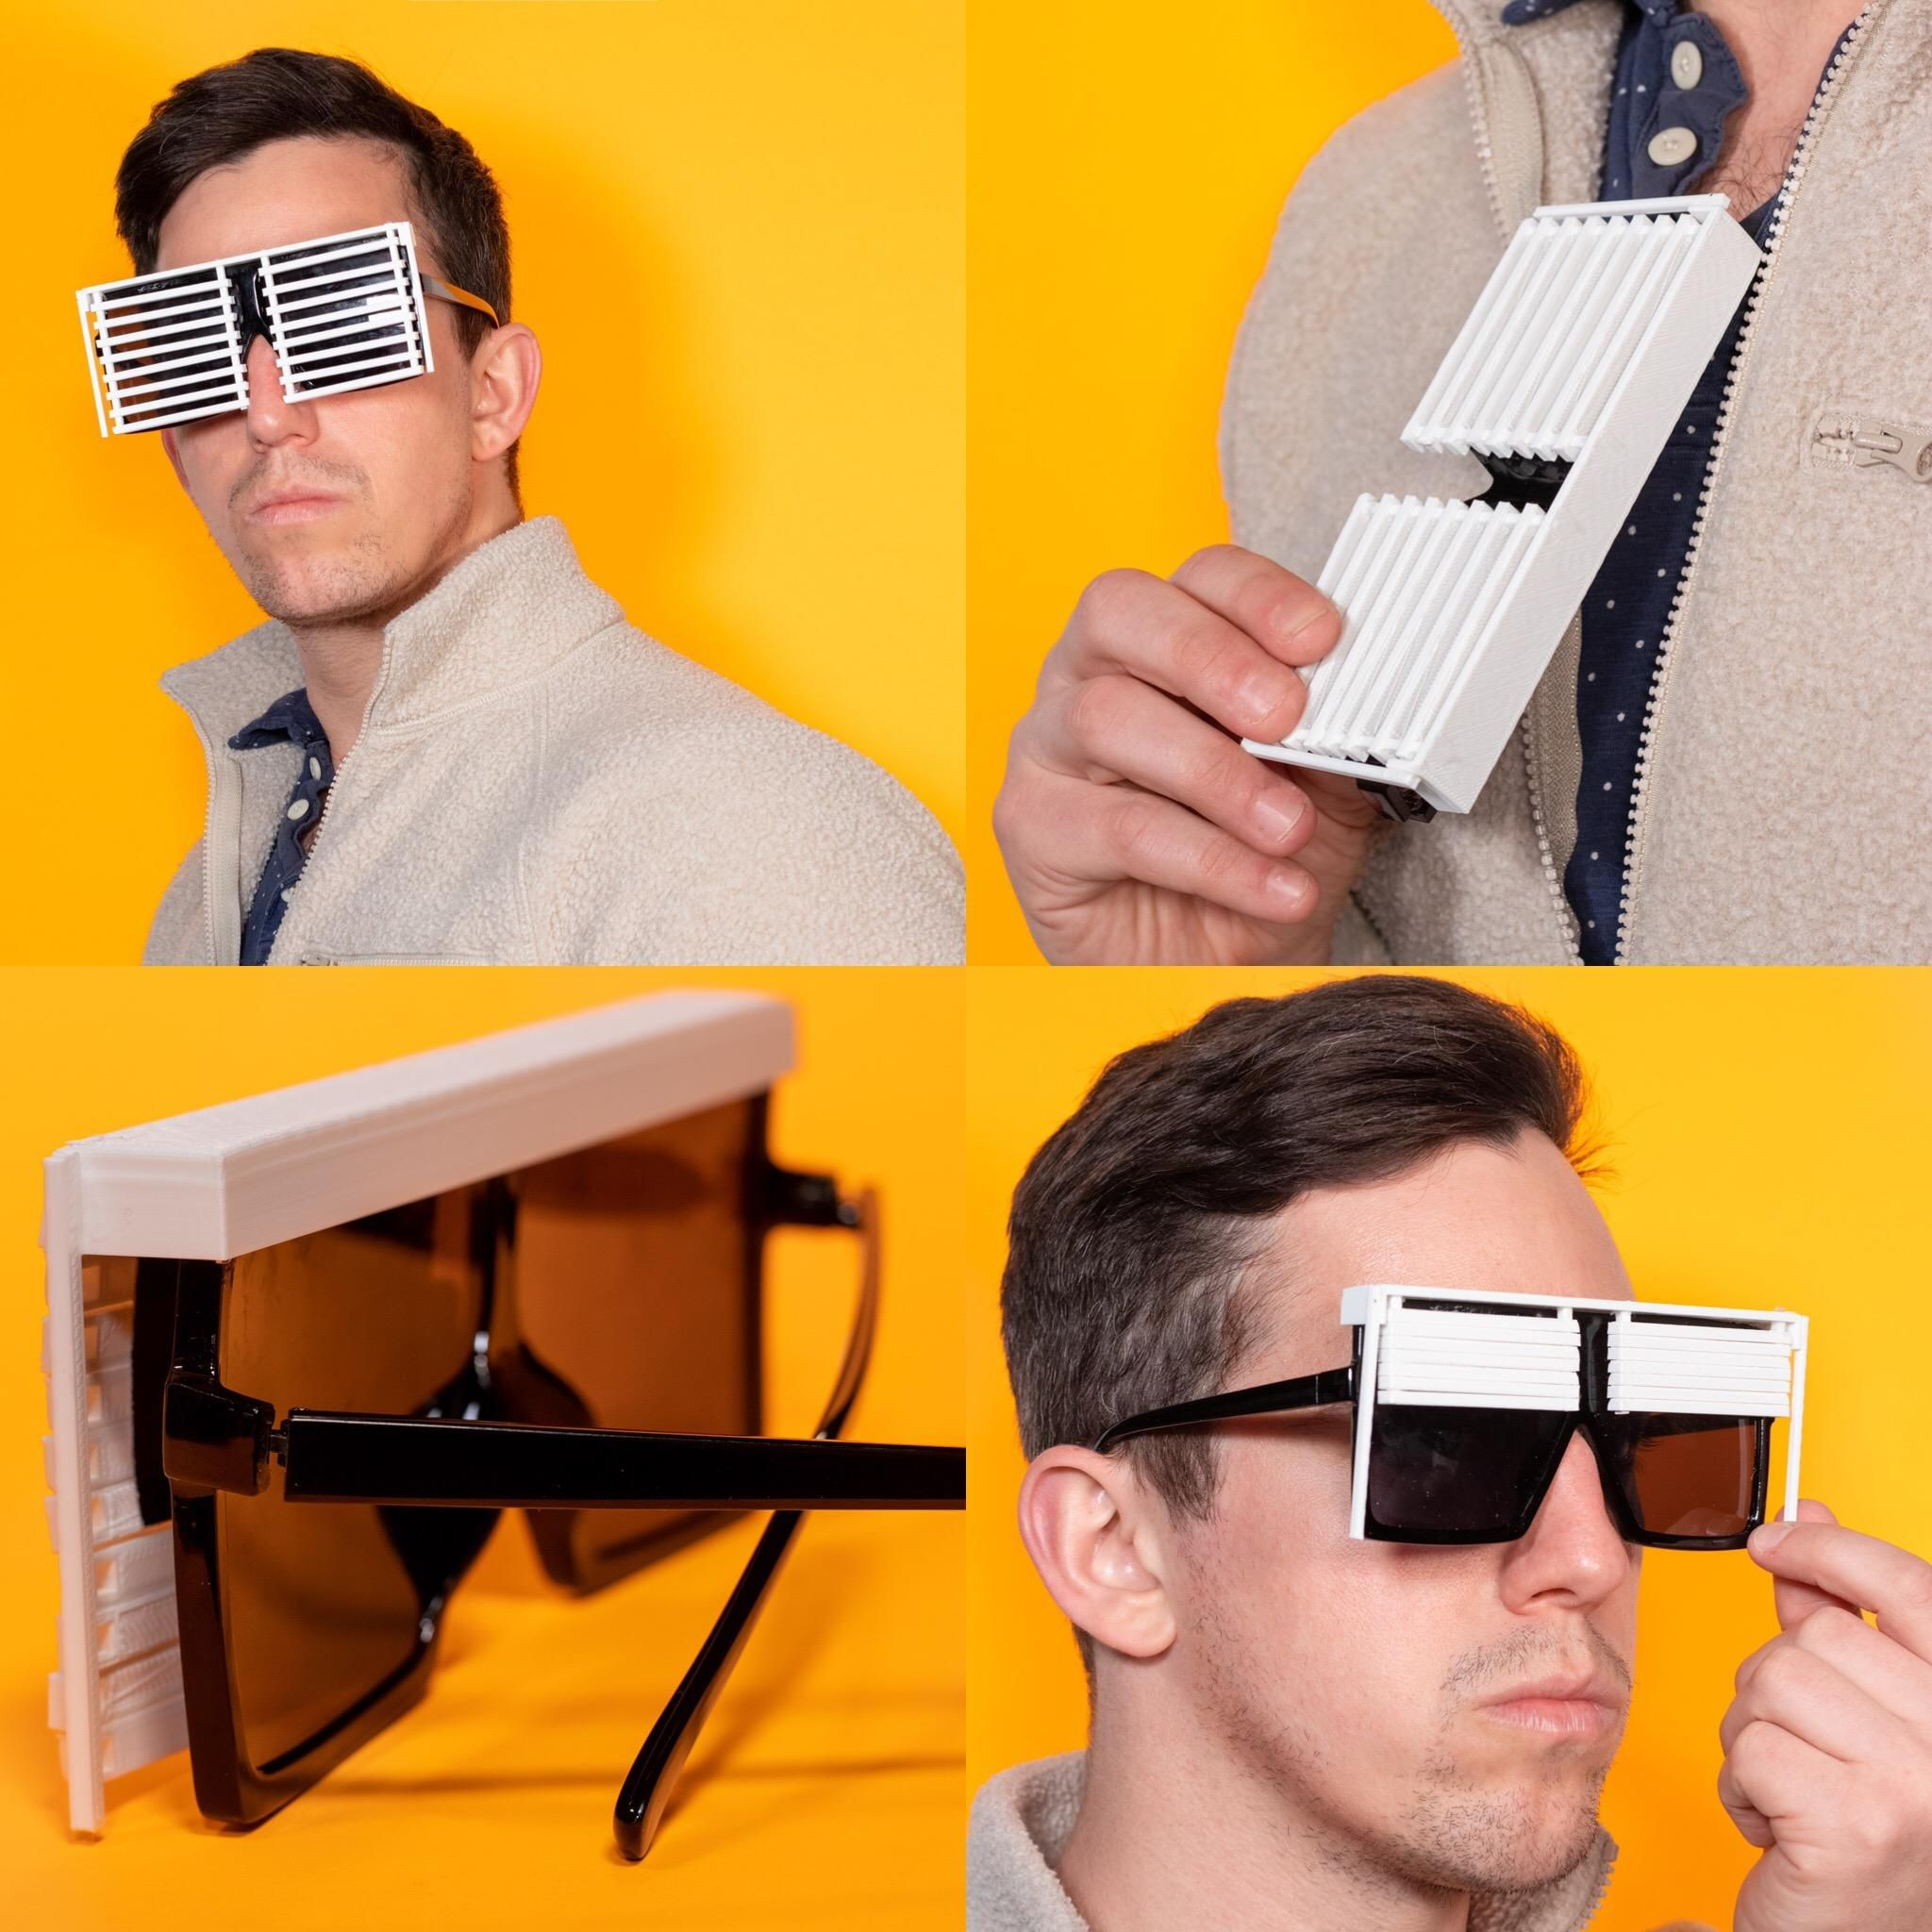 I like to design stupid products for fun so I created blinds for my sunglasses